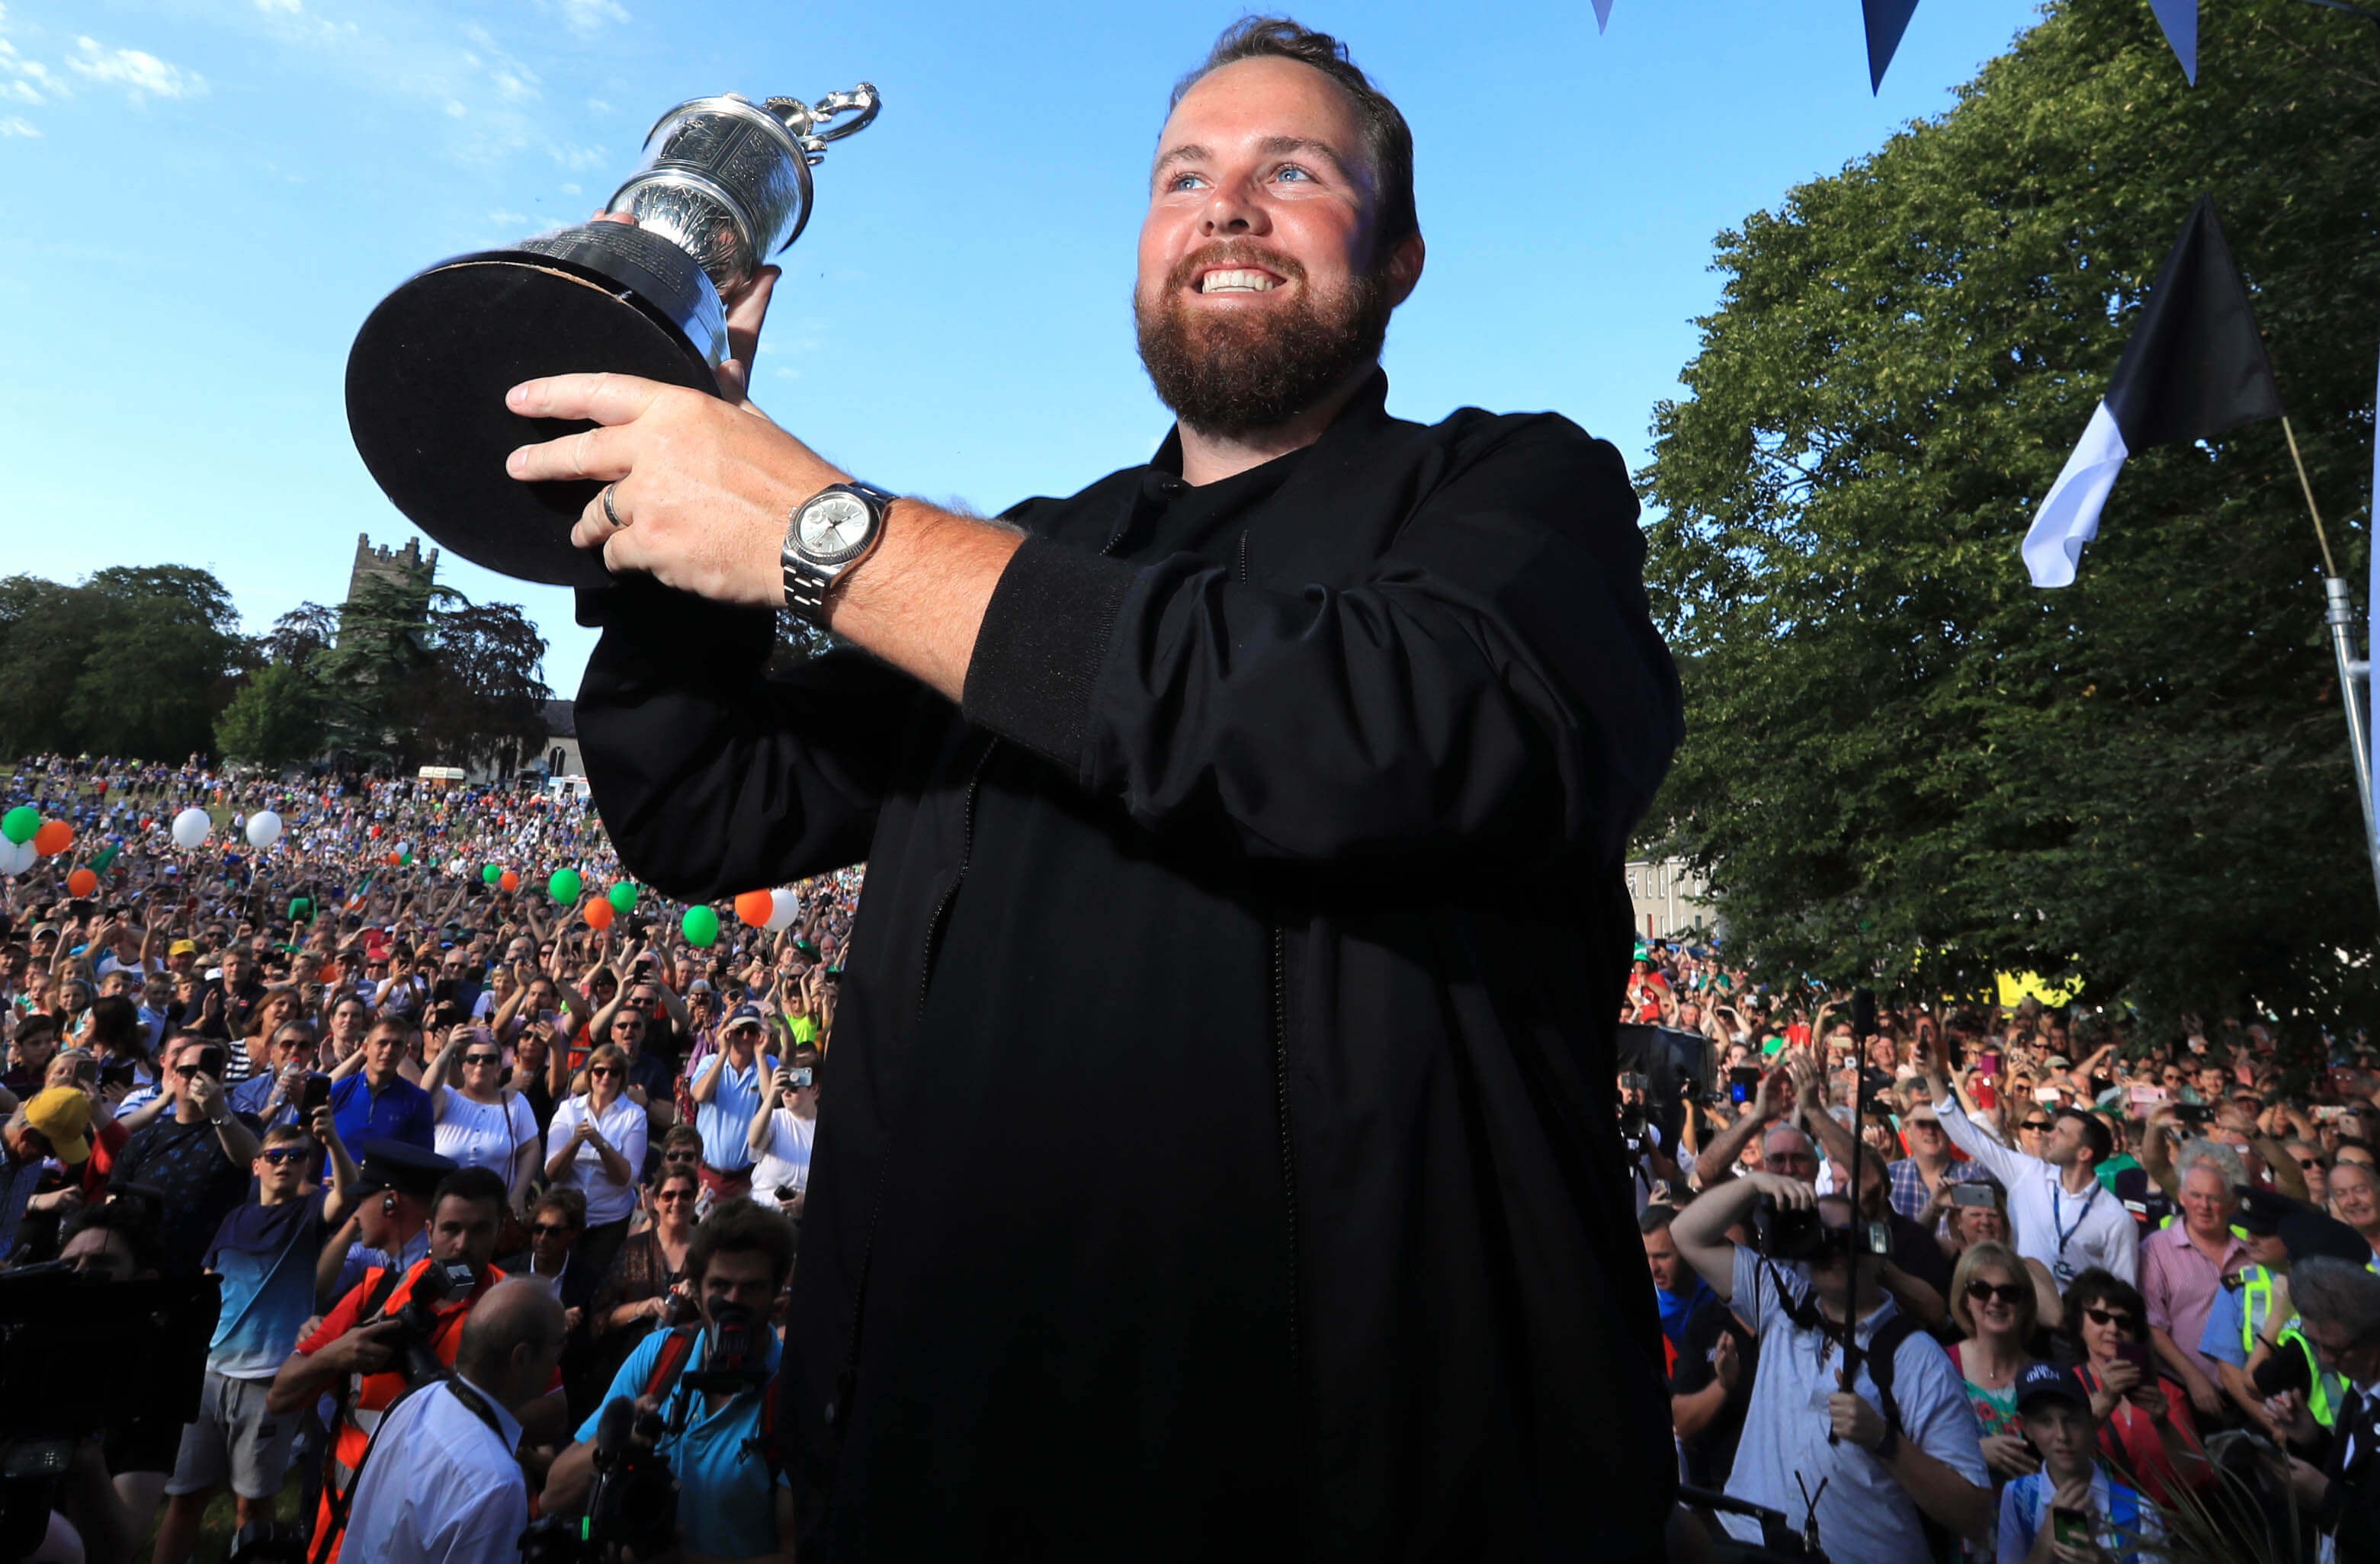 Shane Lowry with the Claret Jug after winning the 2019 Open Championship. Photo by PA Images/Sipa USA)